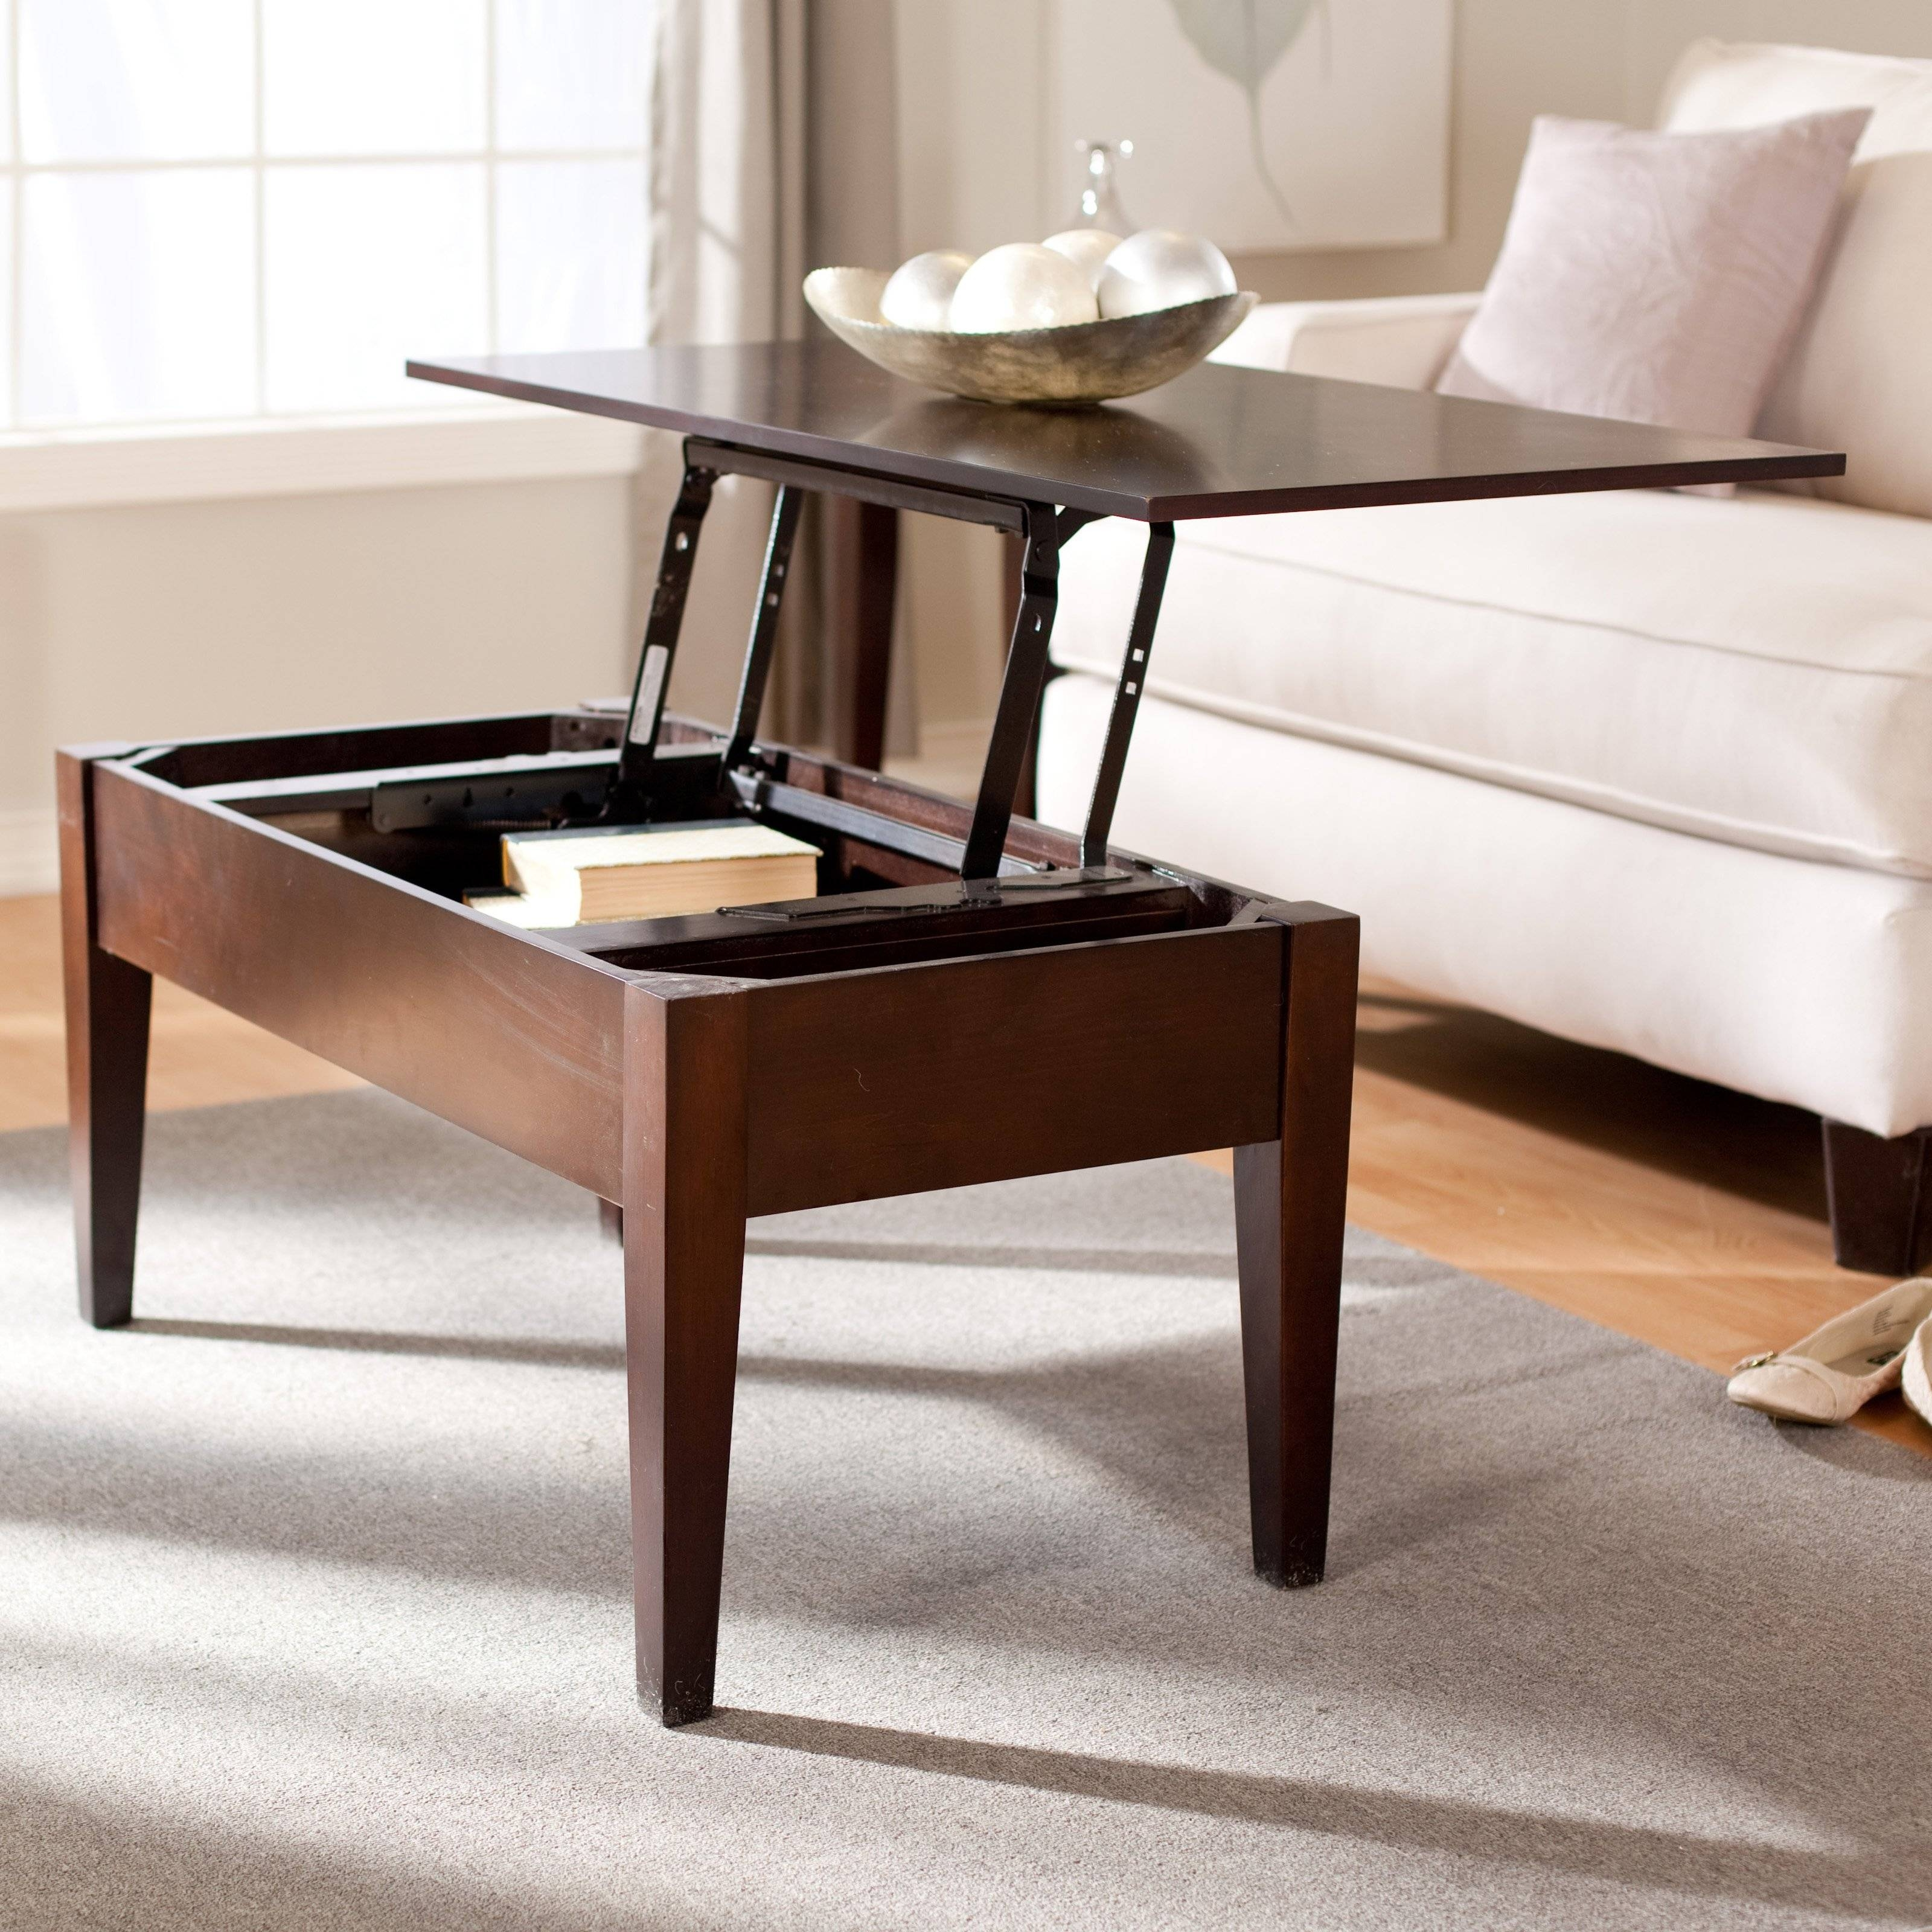 Turner Lift Top Coffee Table - Espresso | Hayneedle inside Coffee Tables Extendable Top (Image 29 of 30)